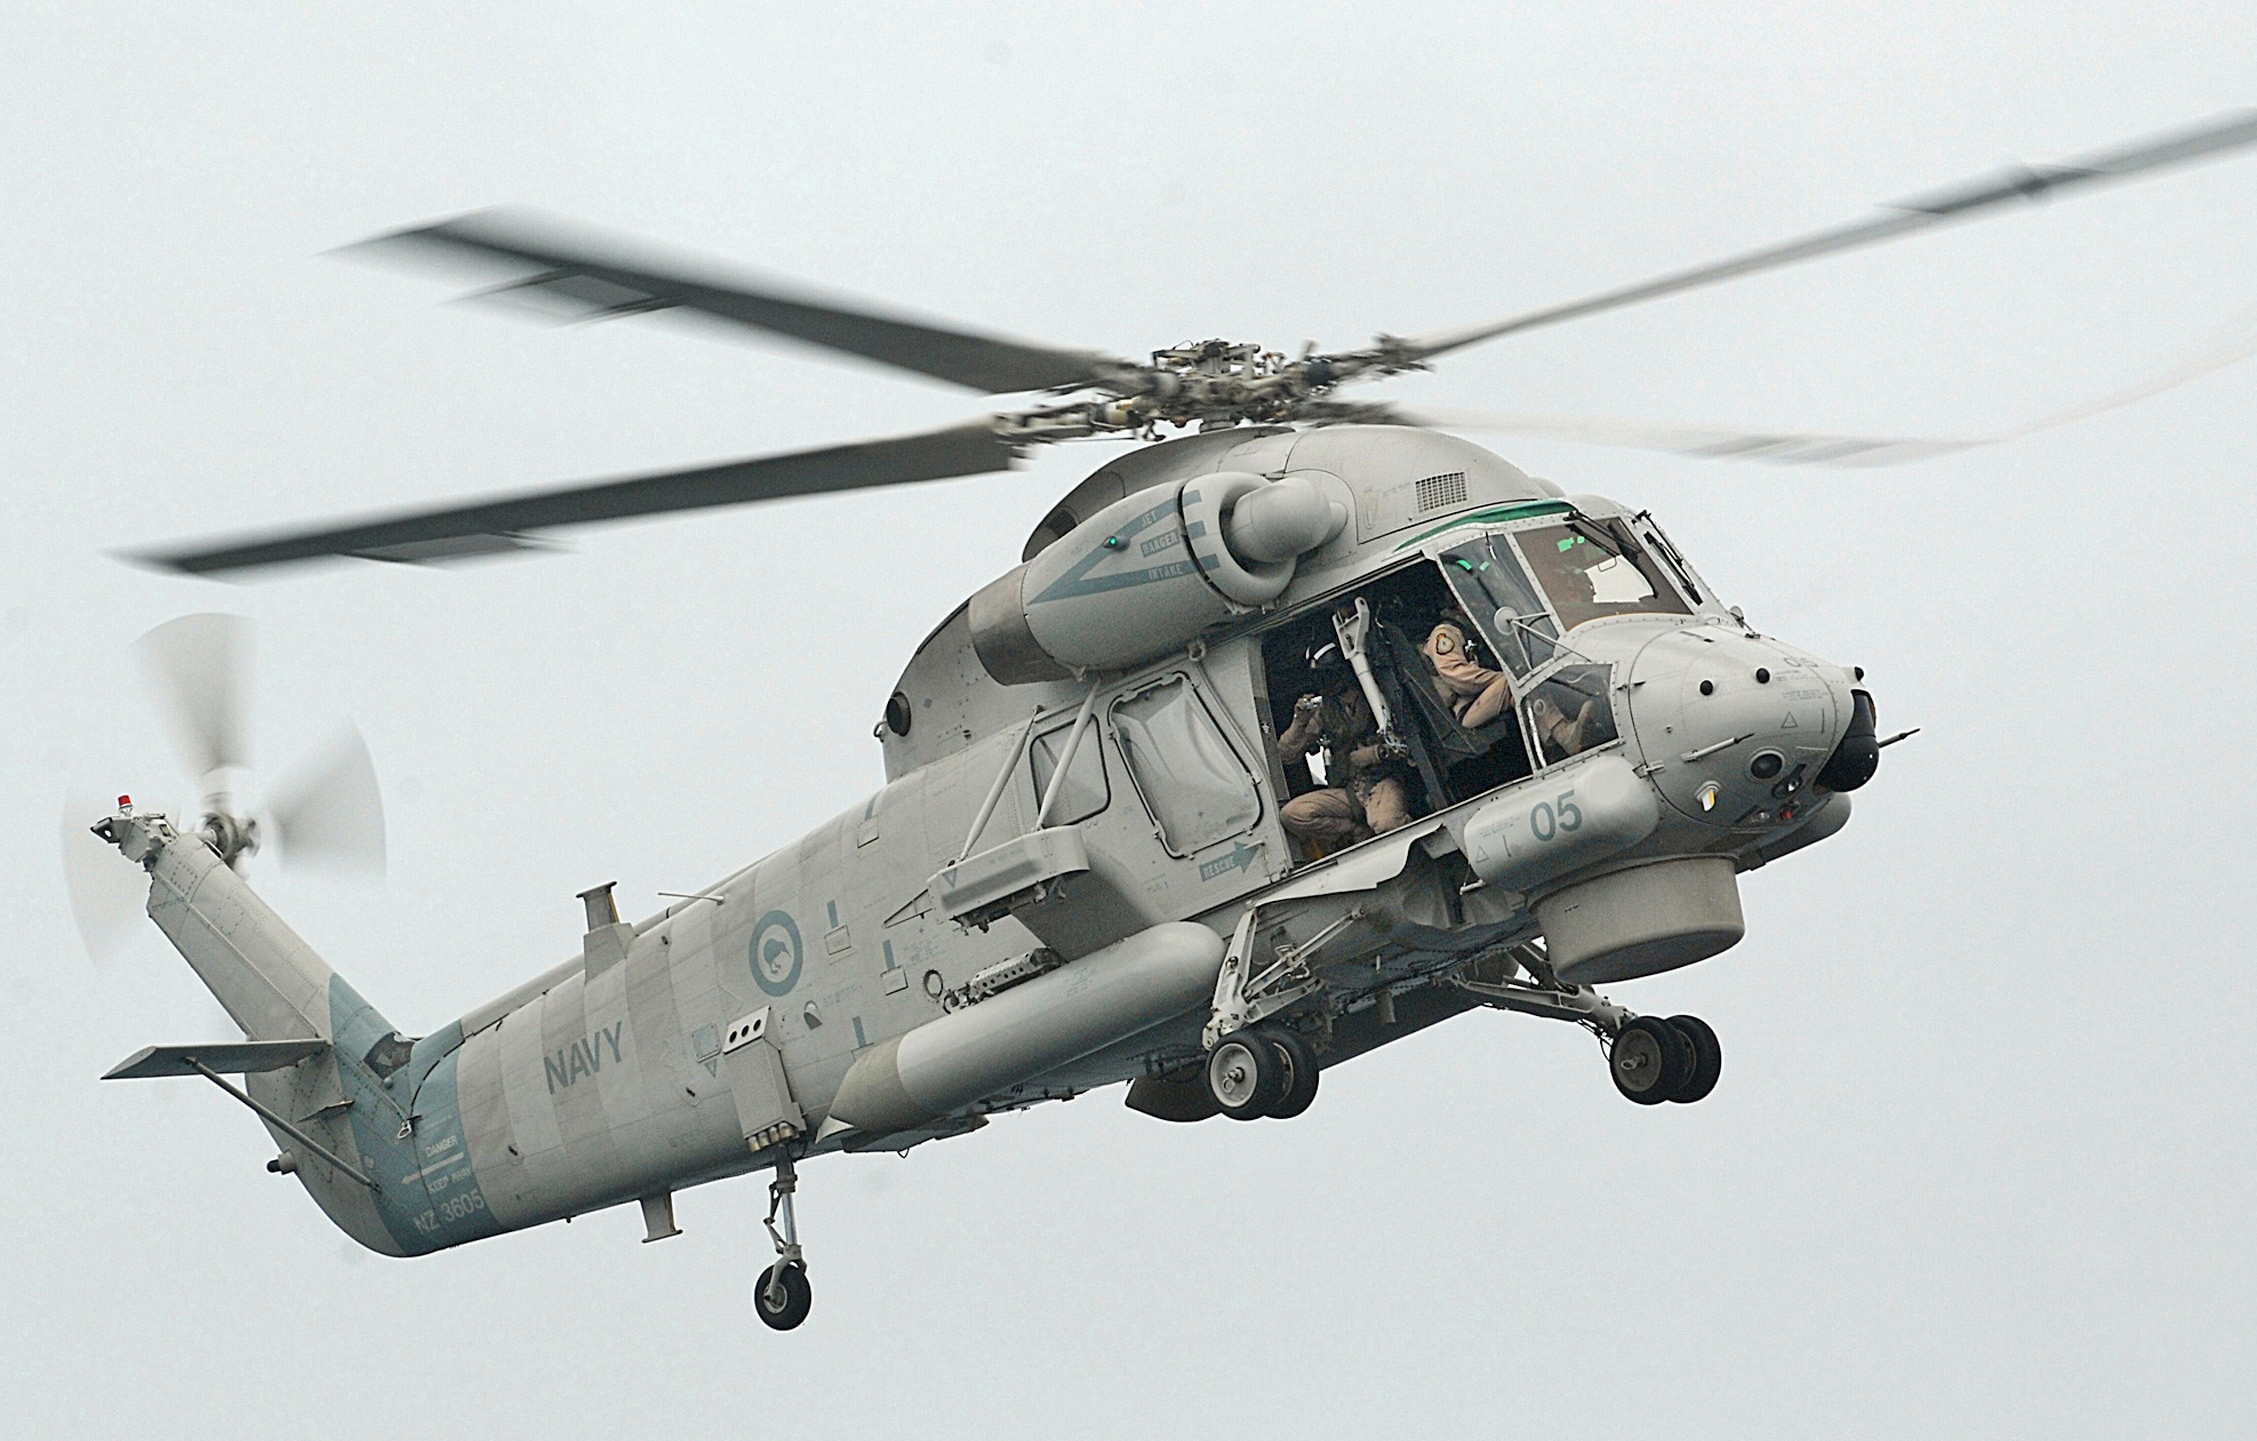 http://upload.wikimedia.org/wikipedia/commons/a/a1/US_Navy_080730-N-5384B-013_he_Royal_New_Zealand_Navy_SH-2G_Sea_Sprite_prepares_to_land_aboard_the_Nimitz-class_aircraft_carrier_USS_Abraham_Lincoln_%28CVN_72%29.jpg